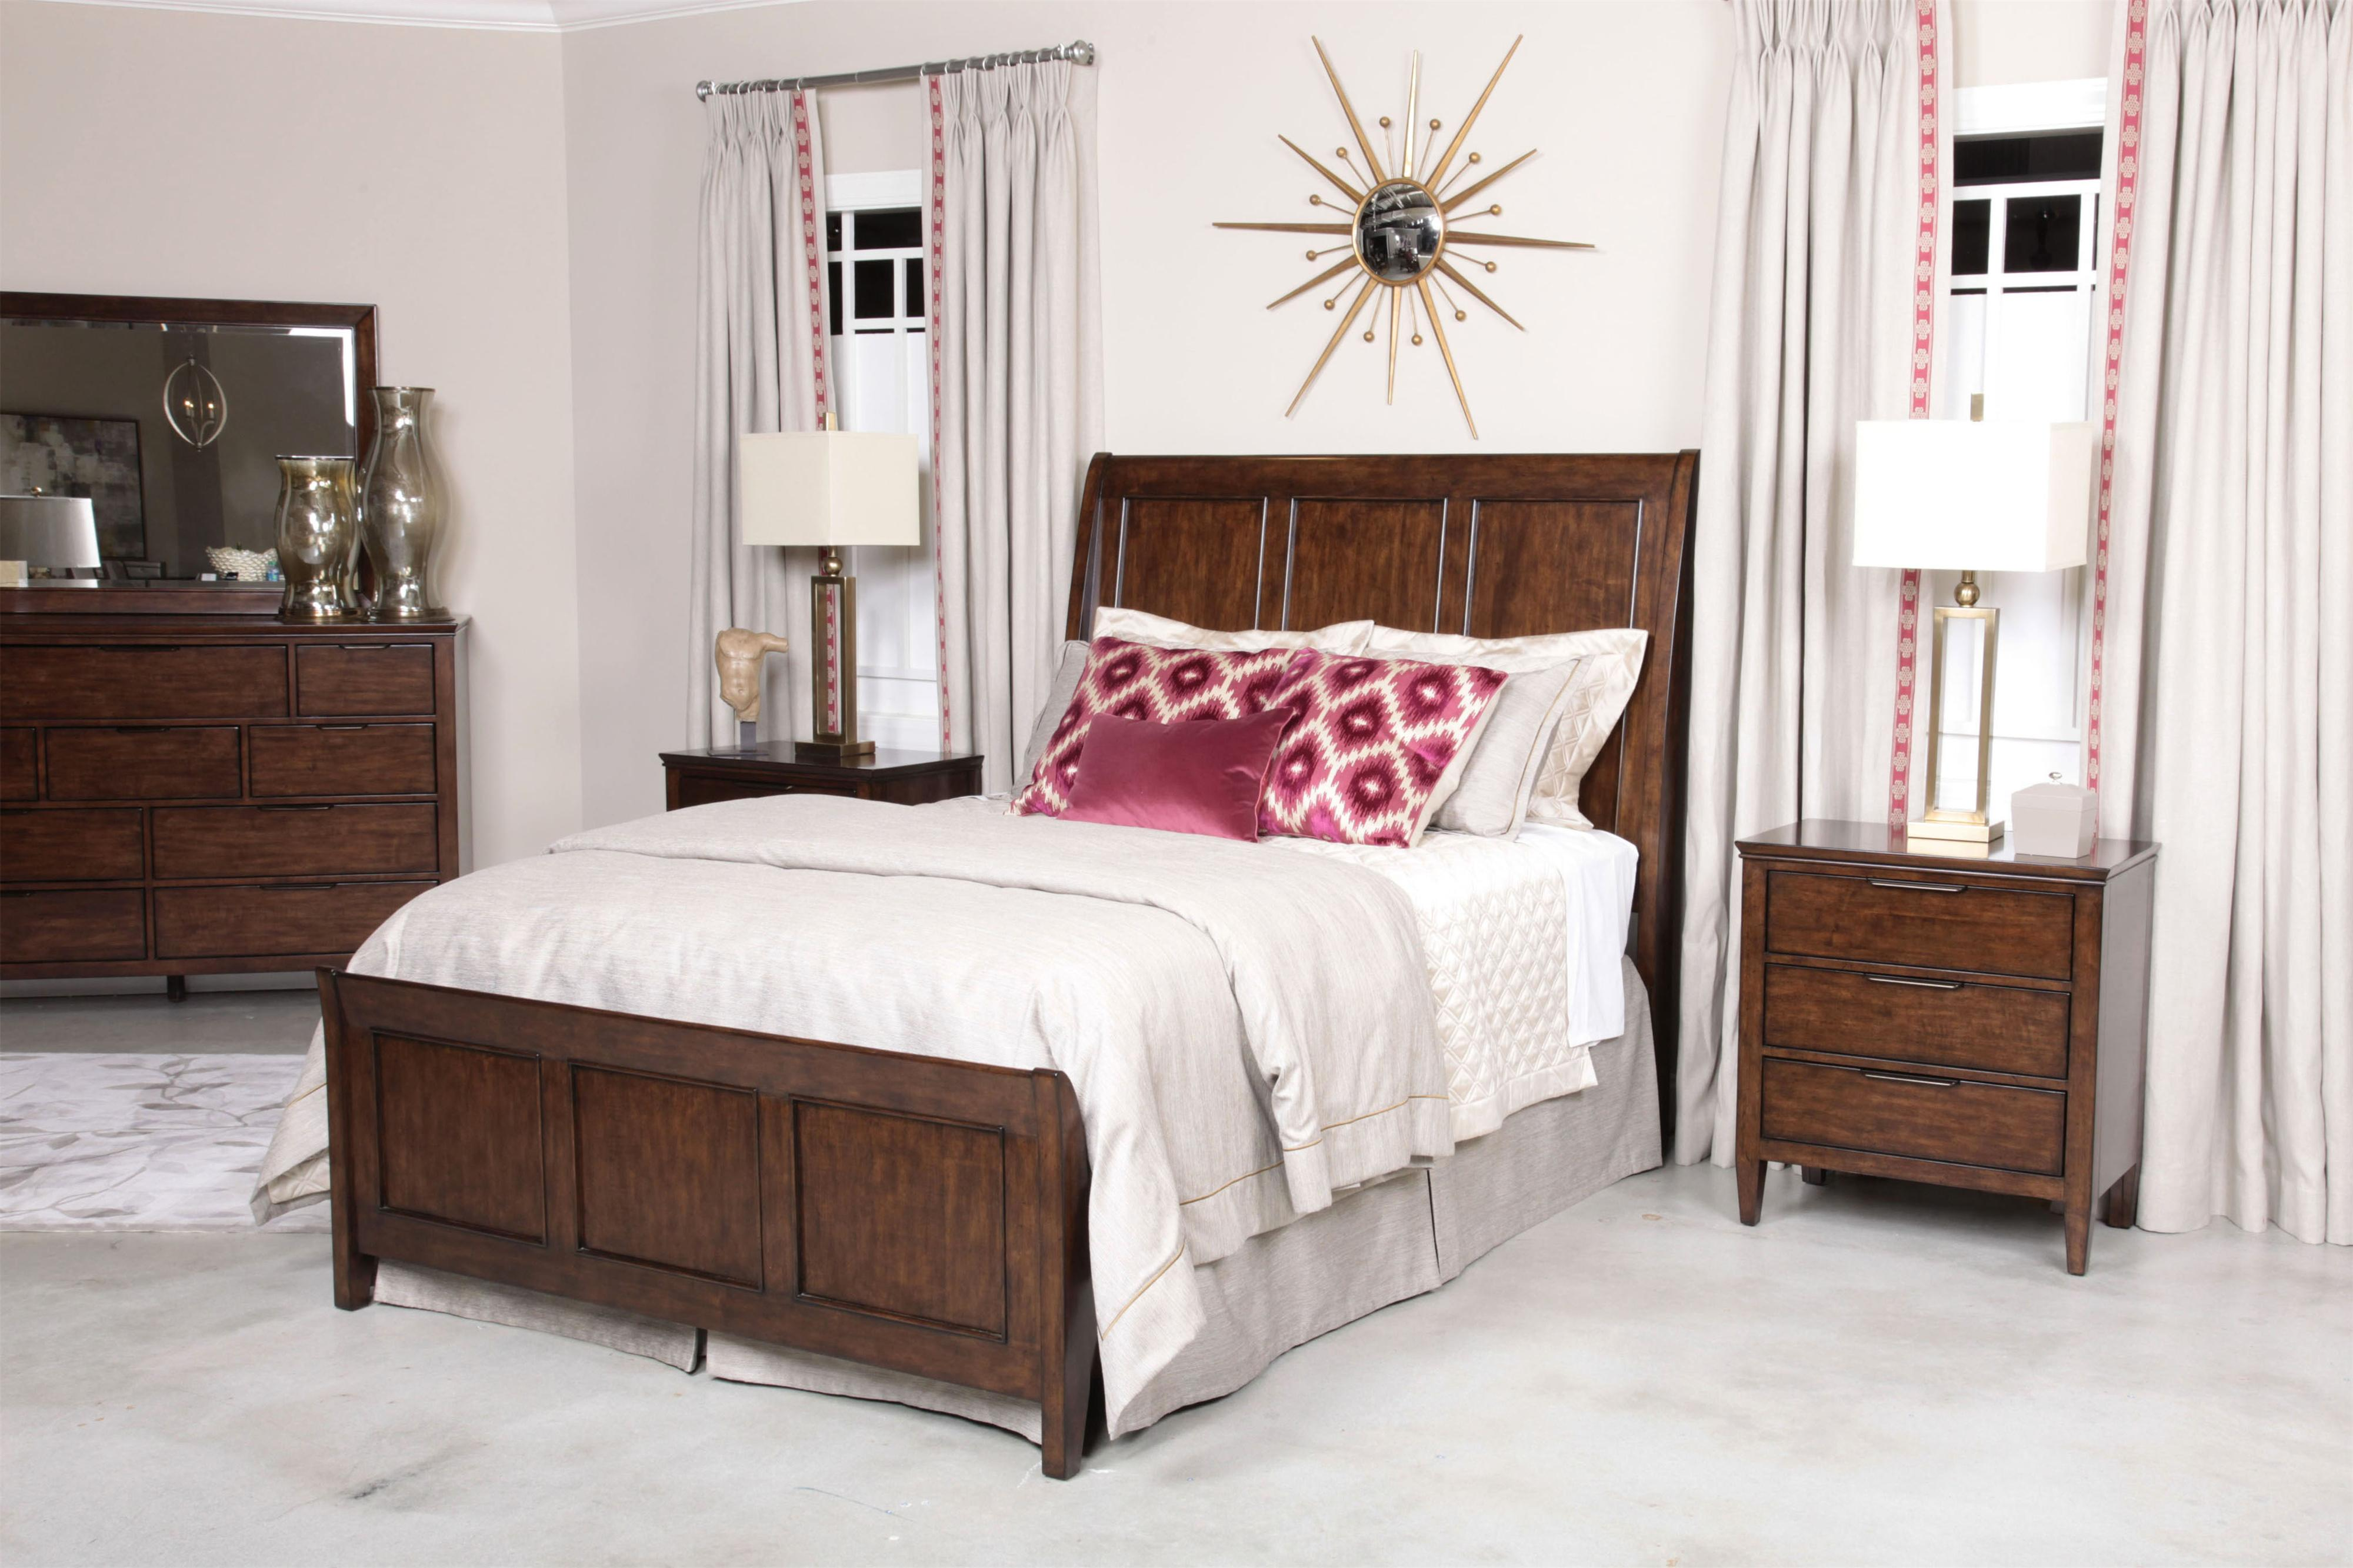 Kincaid Bedroom Furniture Caris Queen Sleigh Bed By Kincaid Furniture Wolf And Gardiner